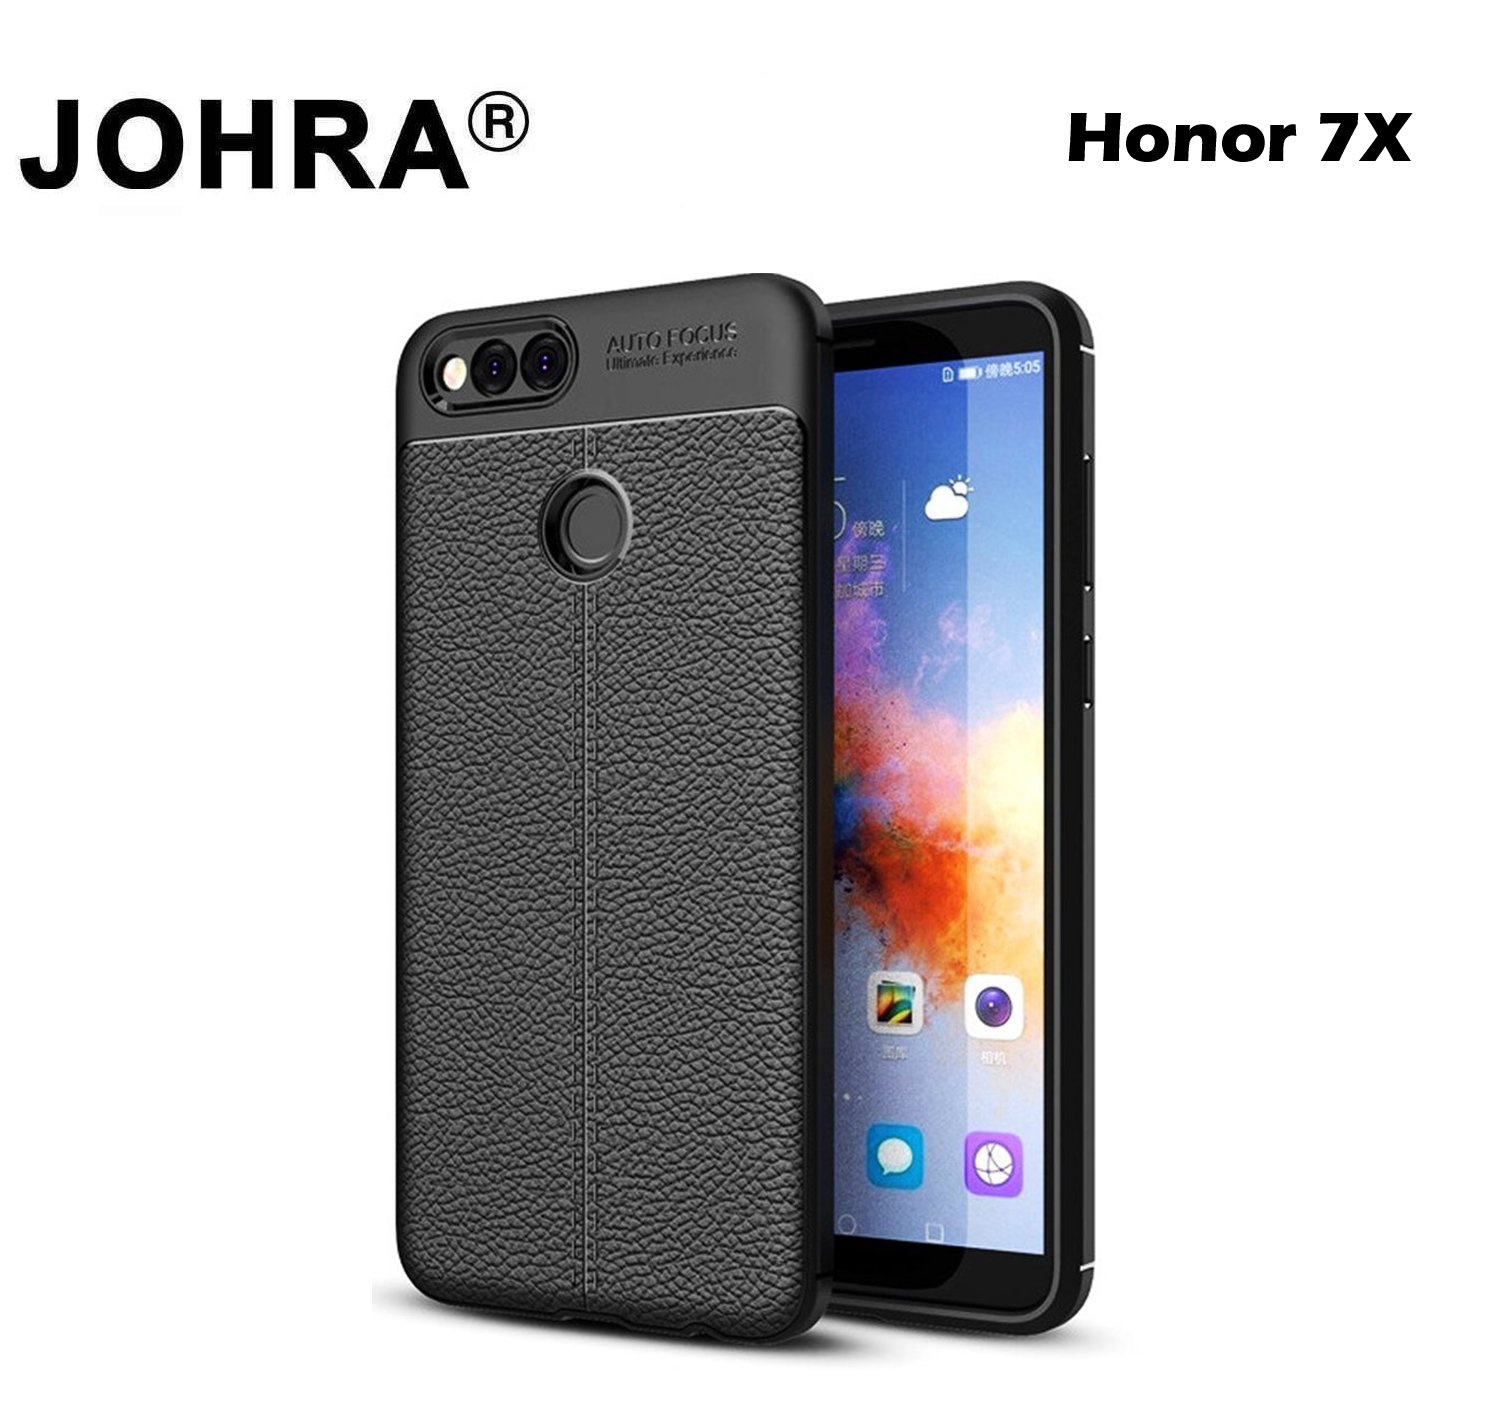 100% authentic 97468 eff68 Honor 7X Back Cover - Johra® Soft Silicone TPU: Amazon.in: Electronics